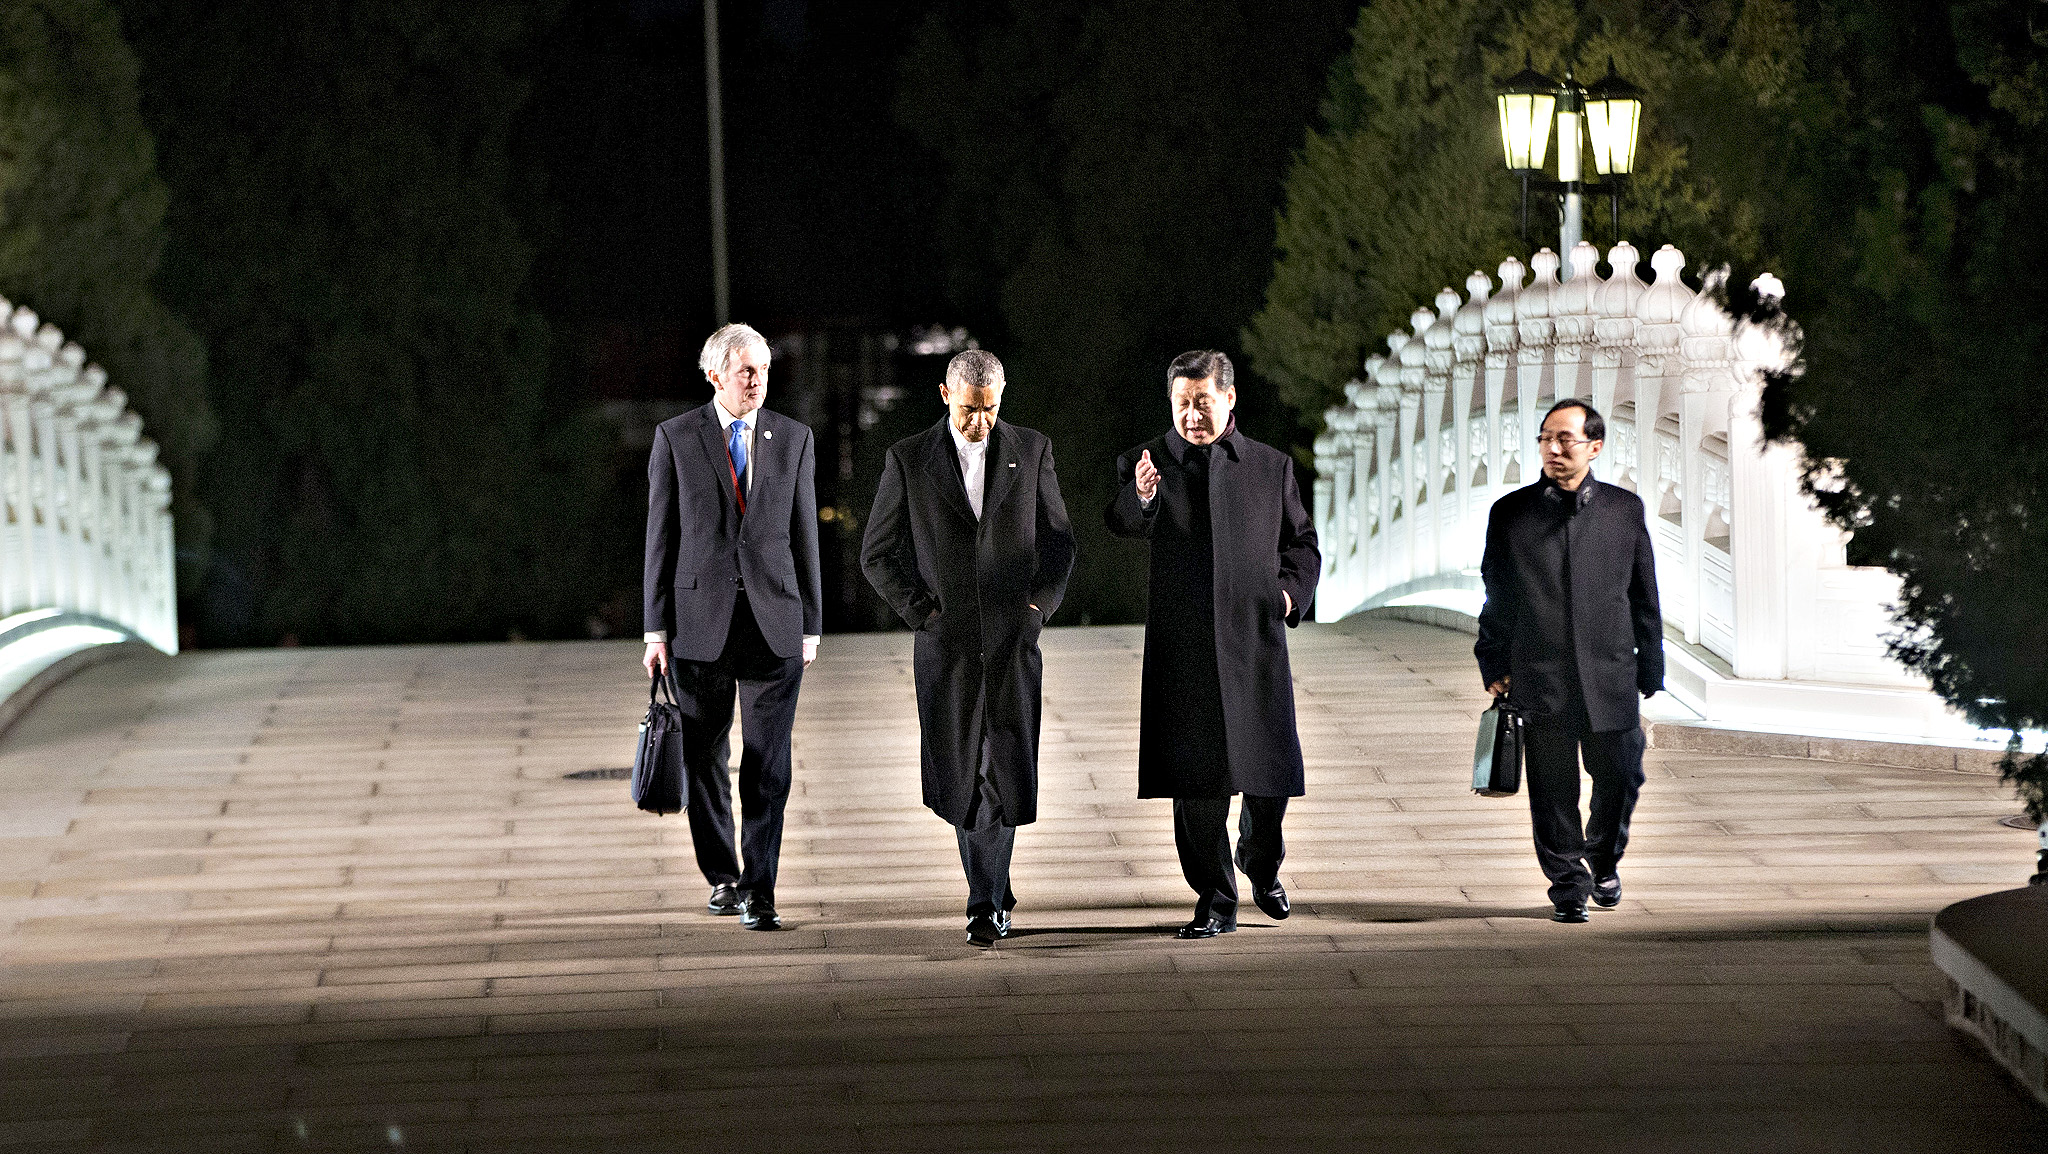 U.S. President Barack Obama, second left, and Chinese President Xi Jinping, second right, walk together at Zhongnanhai leaders compound before their private dinner, Tuesday, Nov. 11, 2014. The others walking with them are their translators.